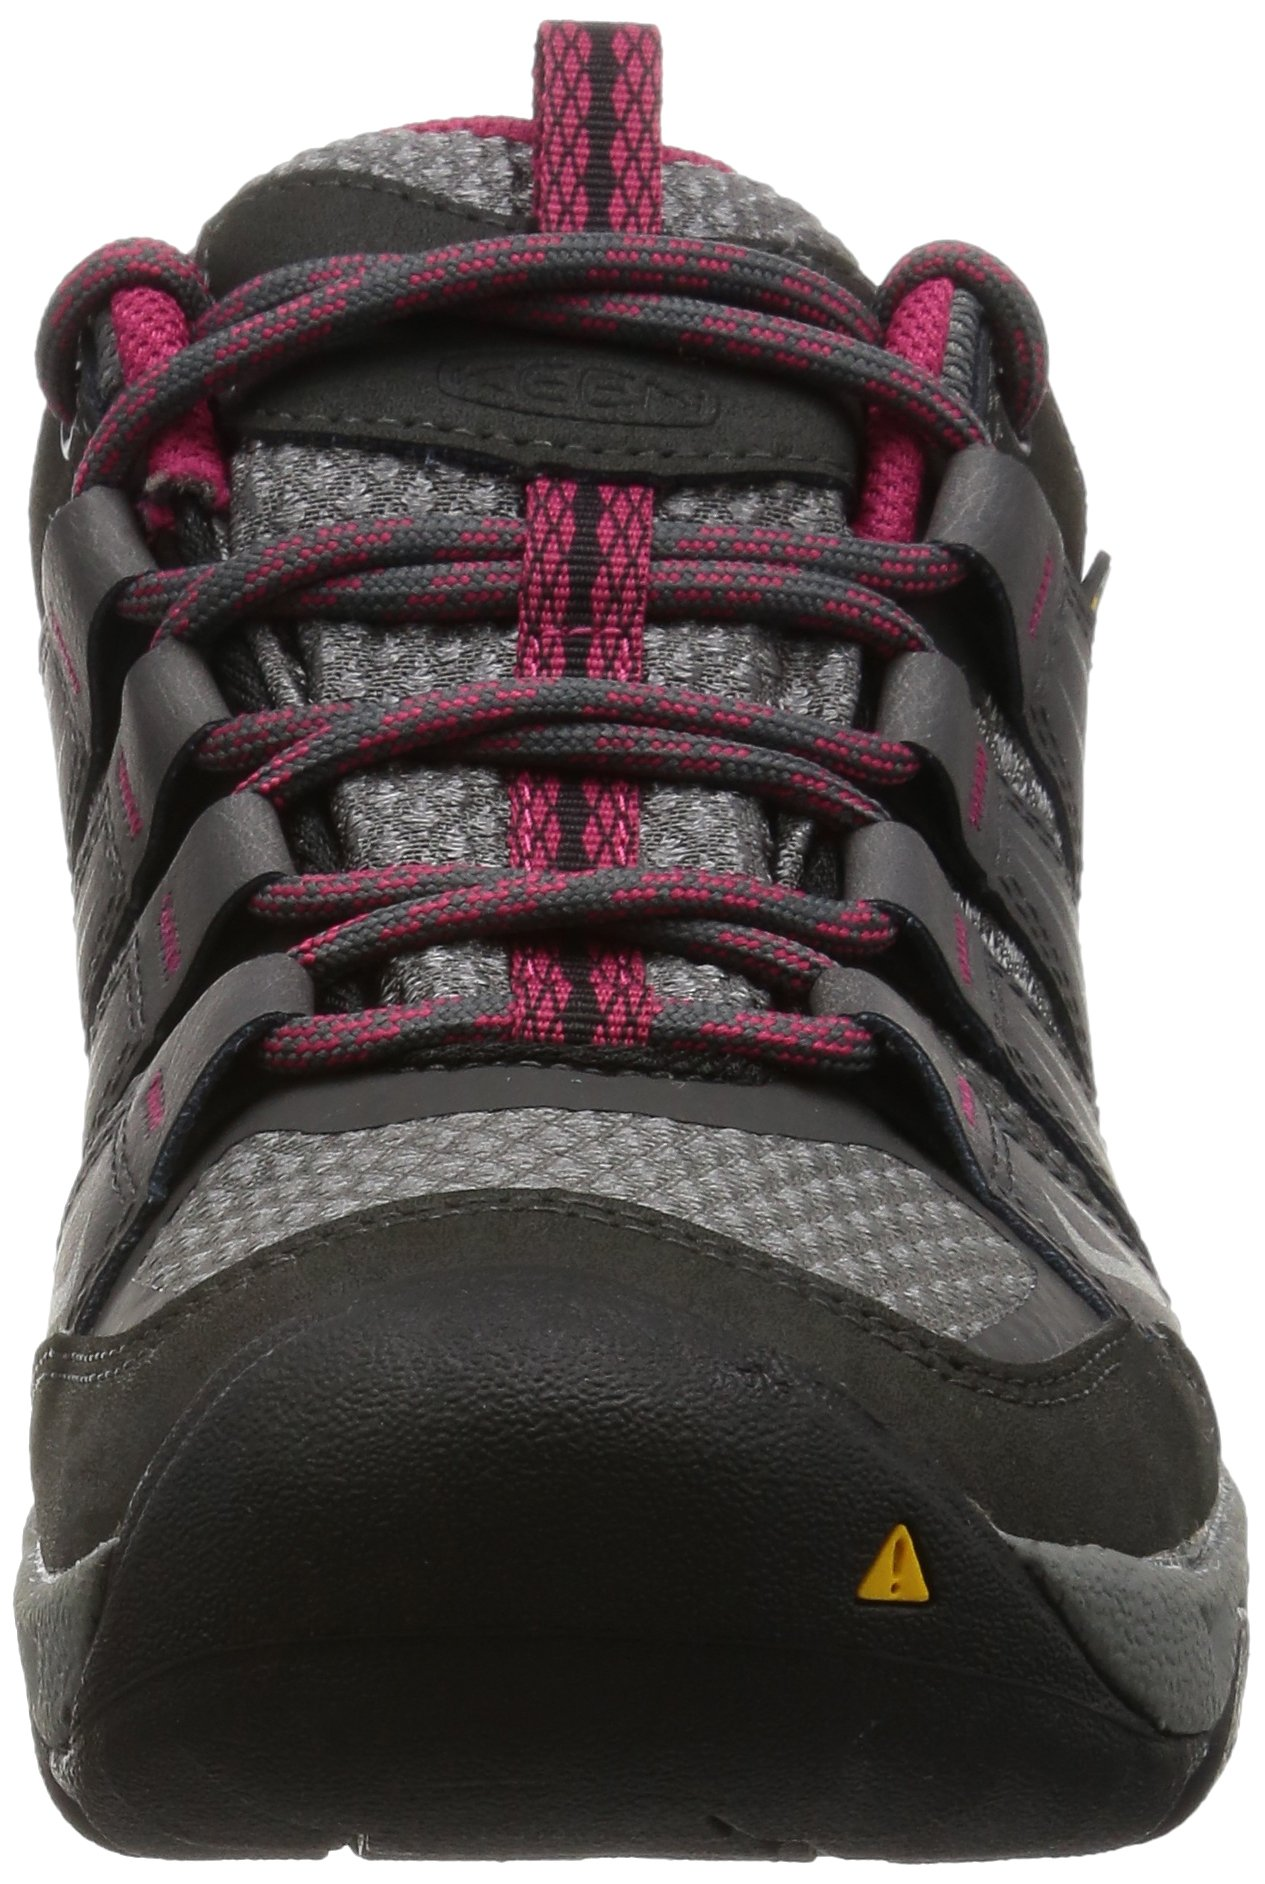 KEEN Women's Oakridge Waterproof Shoe, Magnet/Rose, 9 M US by KEEN (Image #4)